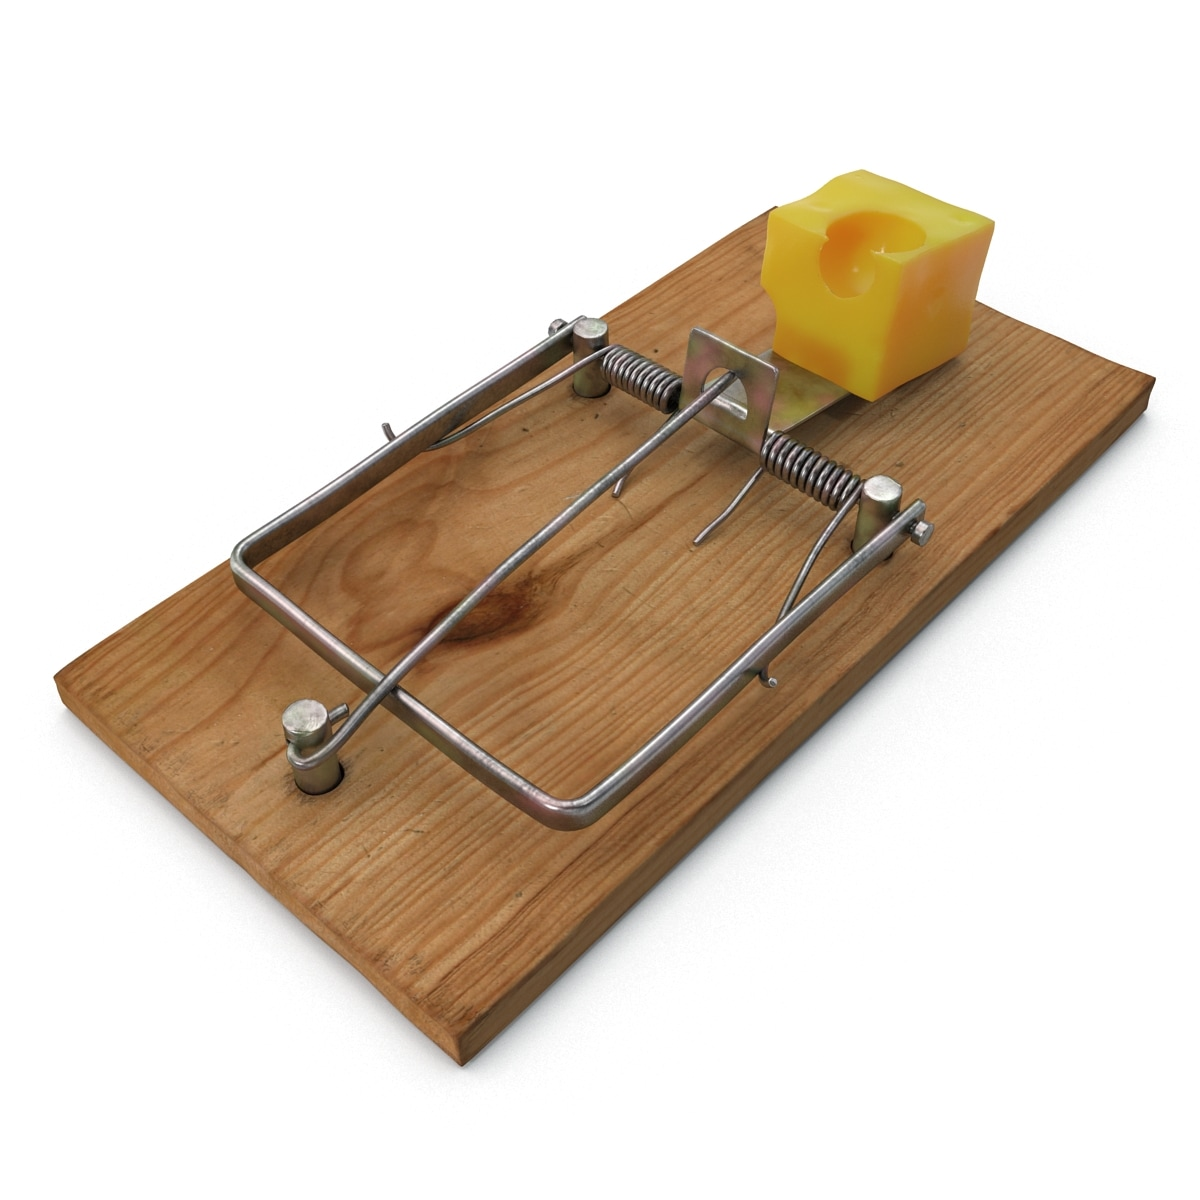 Mousetrap With Cheese_13.jpg